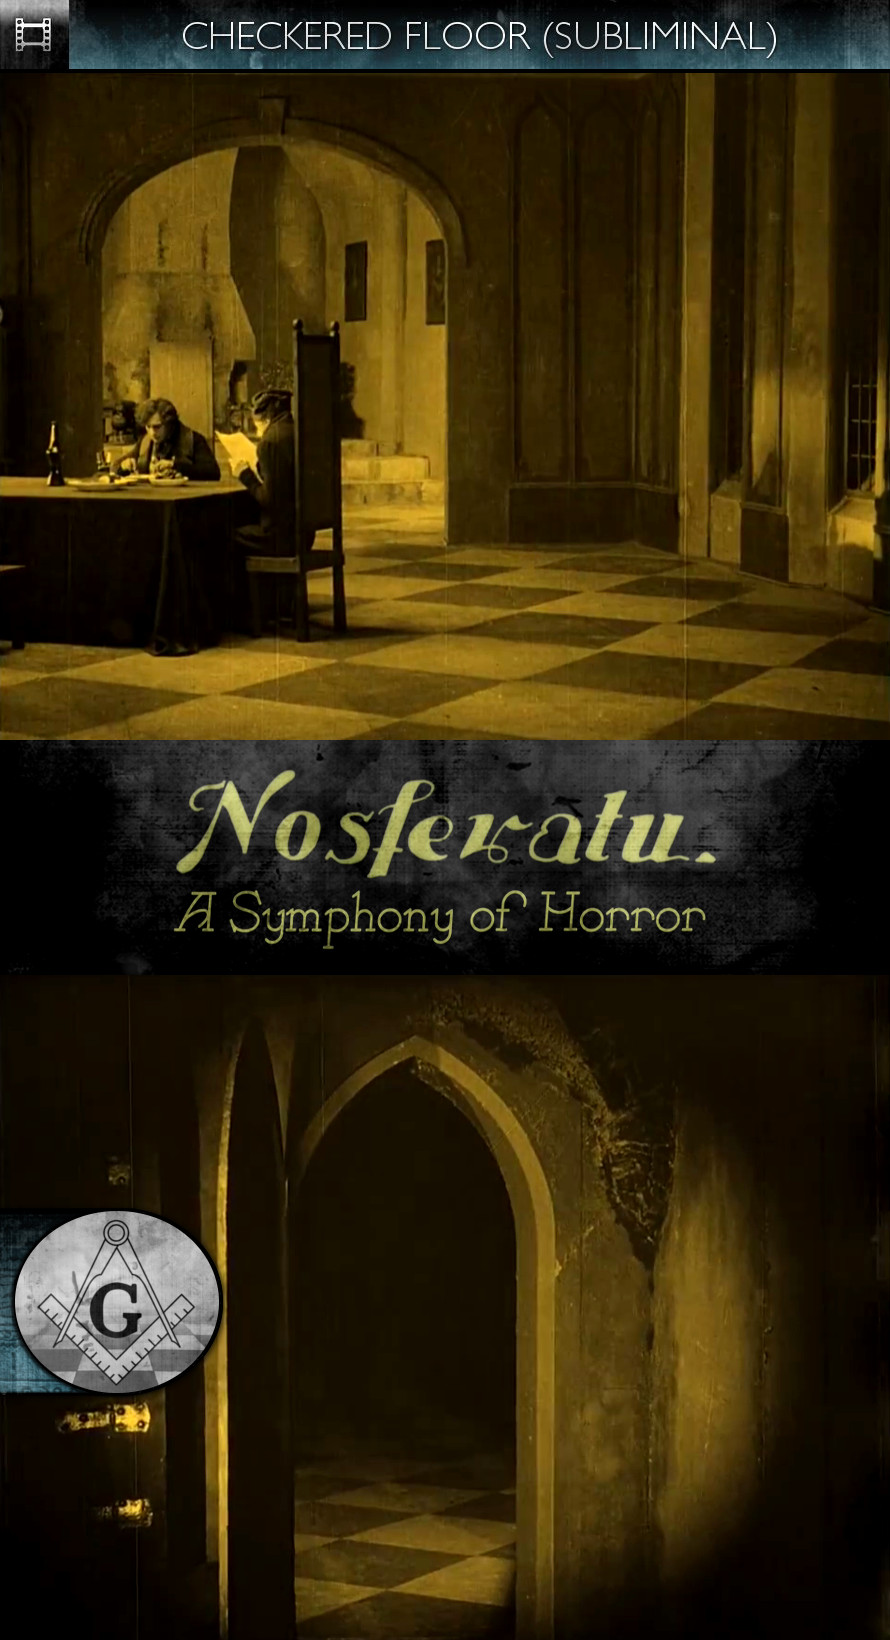 Nosferatu - A Symphony of Horror (1922) - Checkered Floor- Subliminal